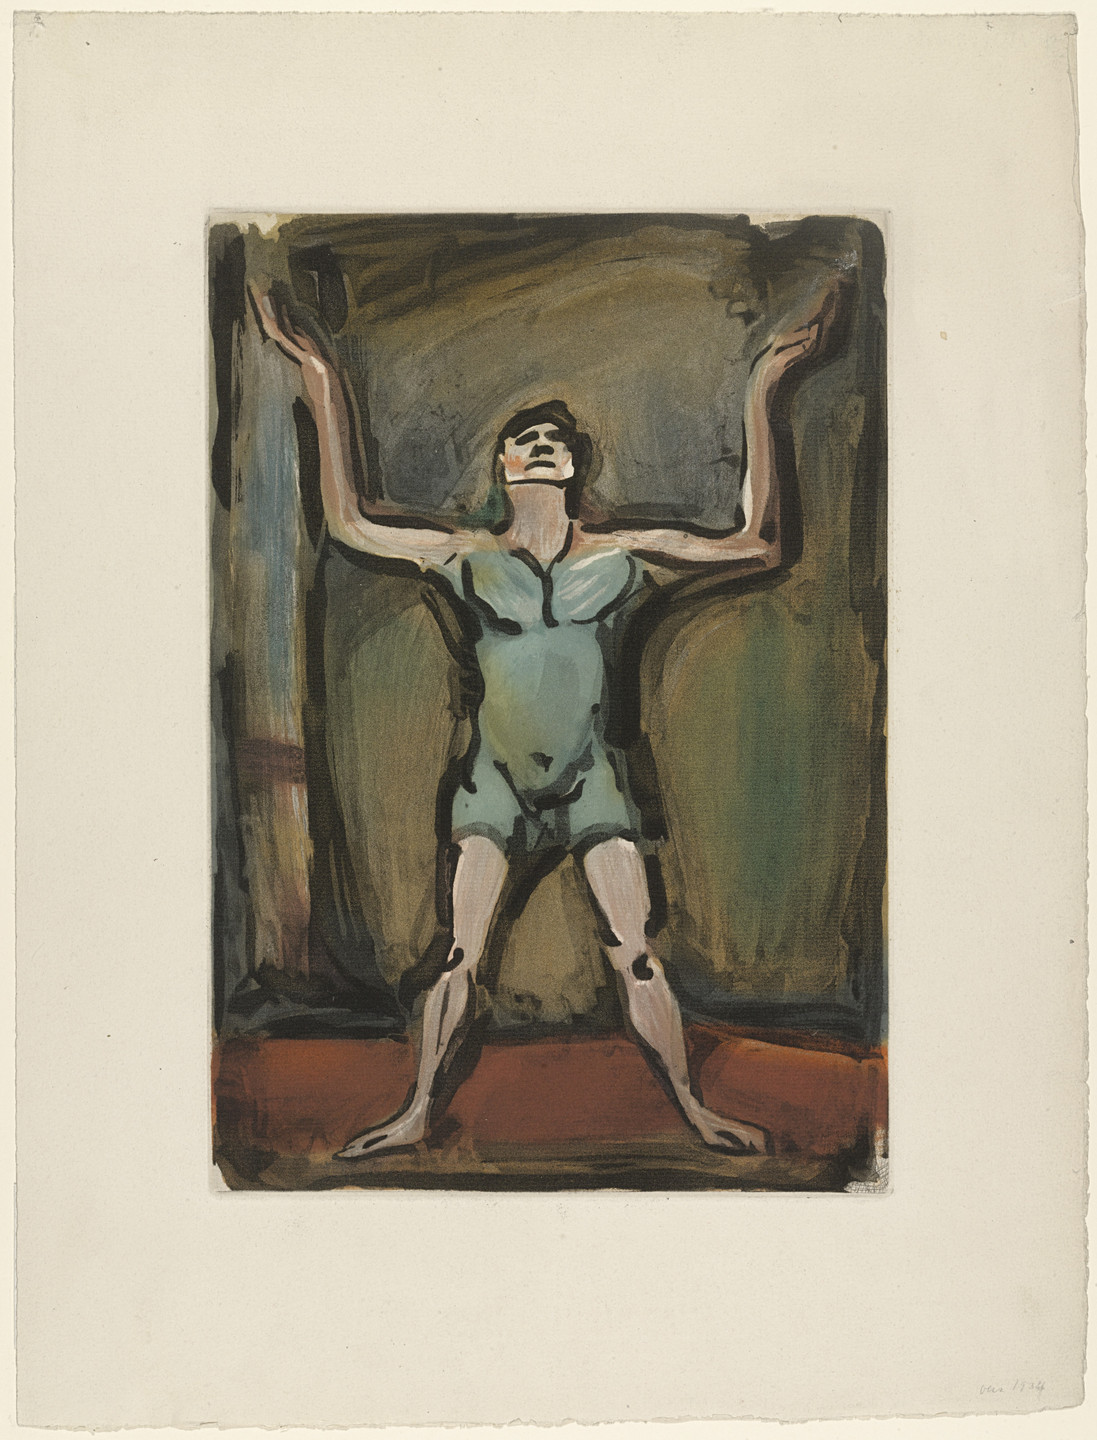 Georges Rouault. The Juggler from Cirque. 1930